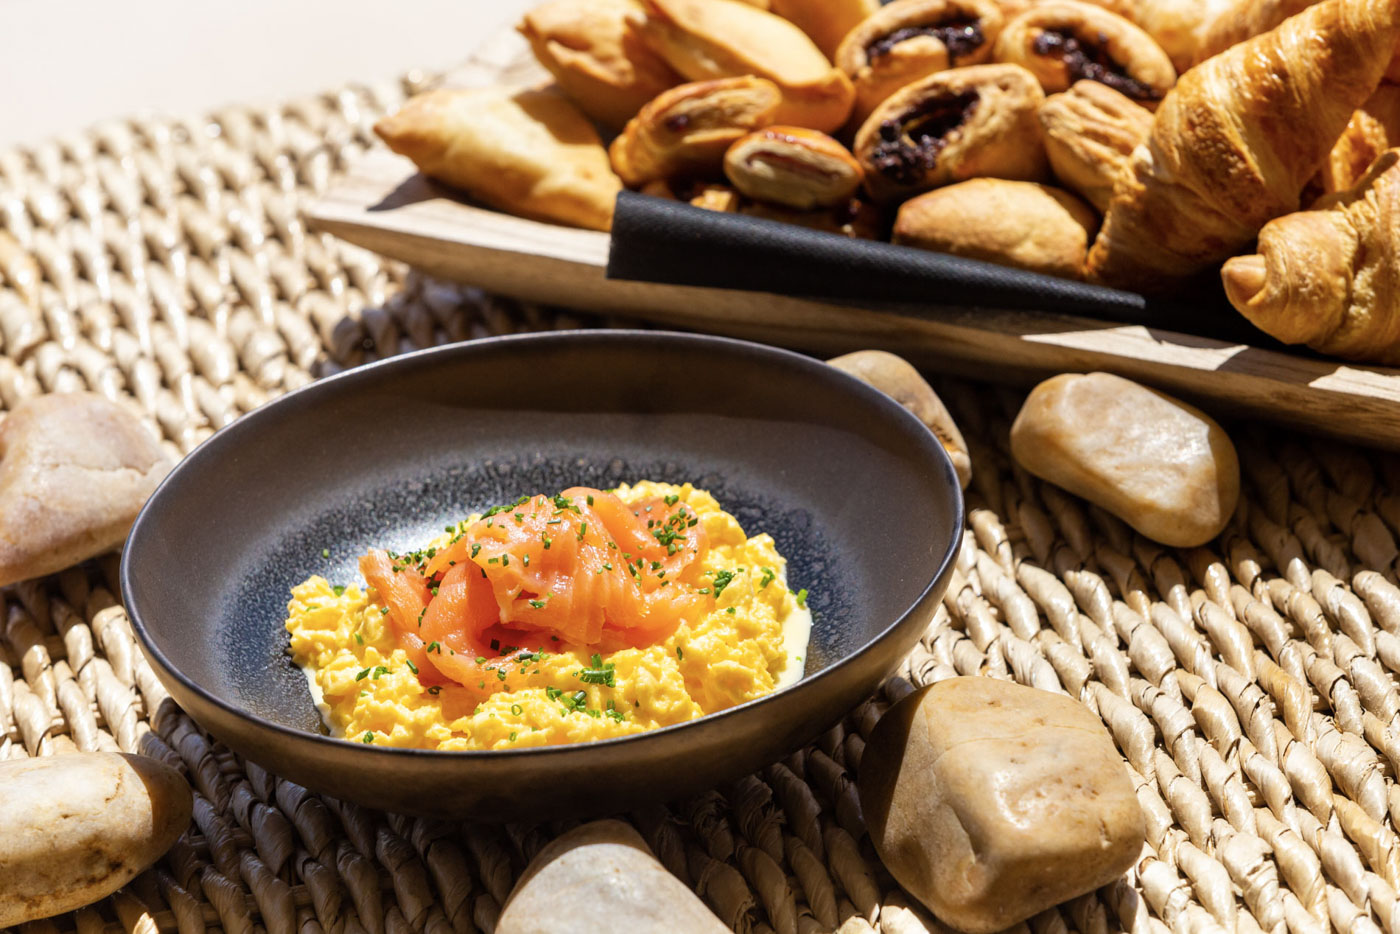 Elysian luxury hotel and spa Kalamata breakfast with scrambled eggs